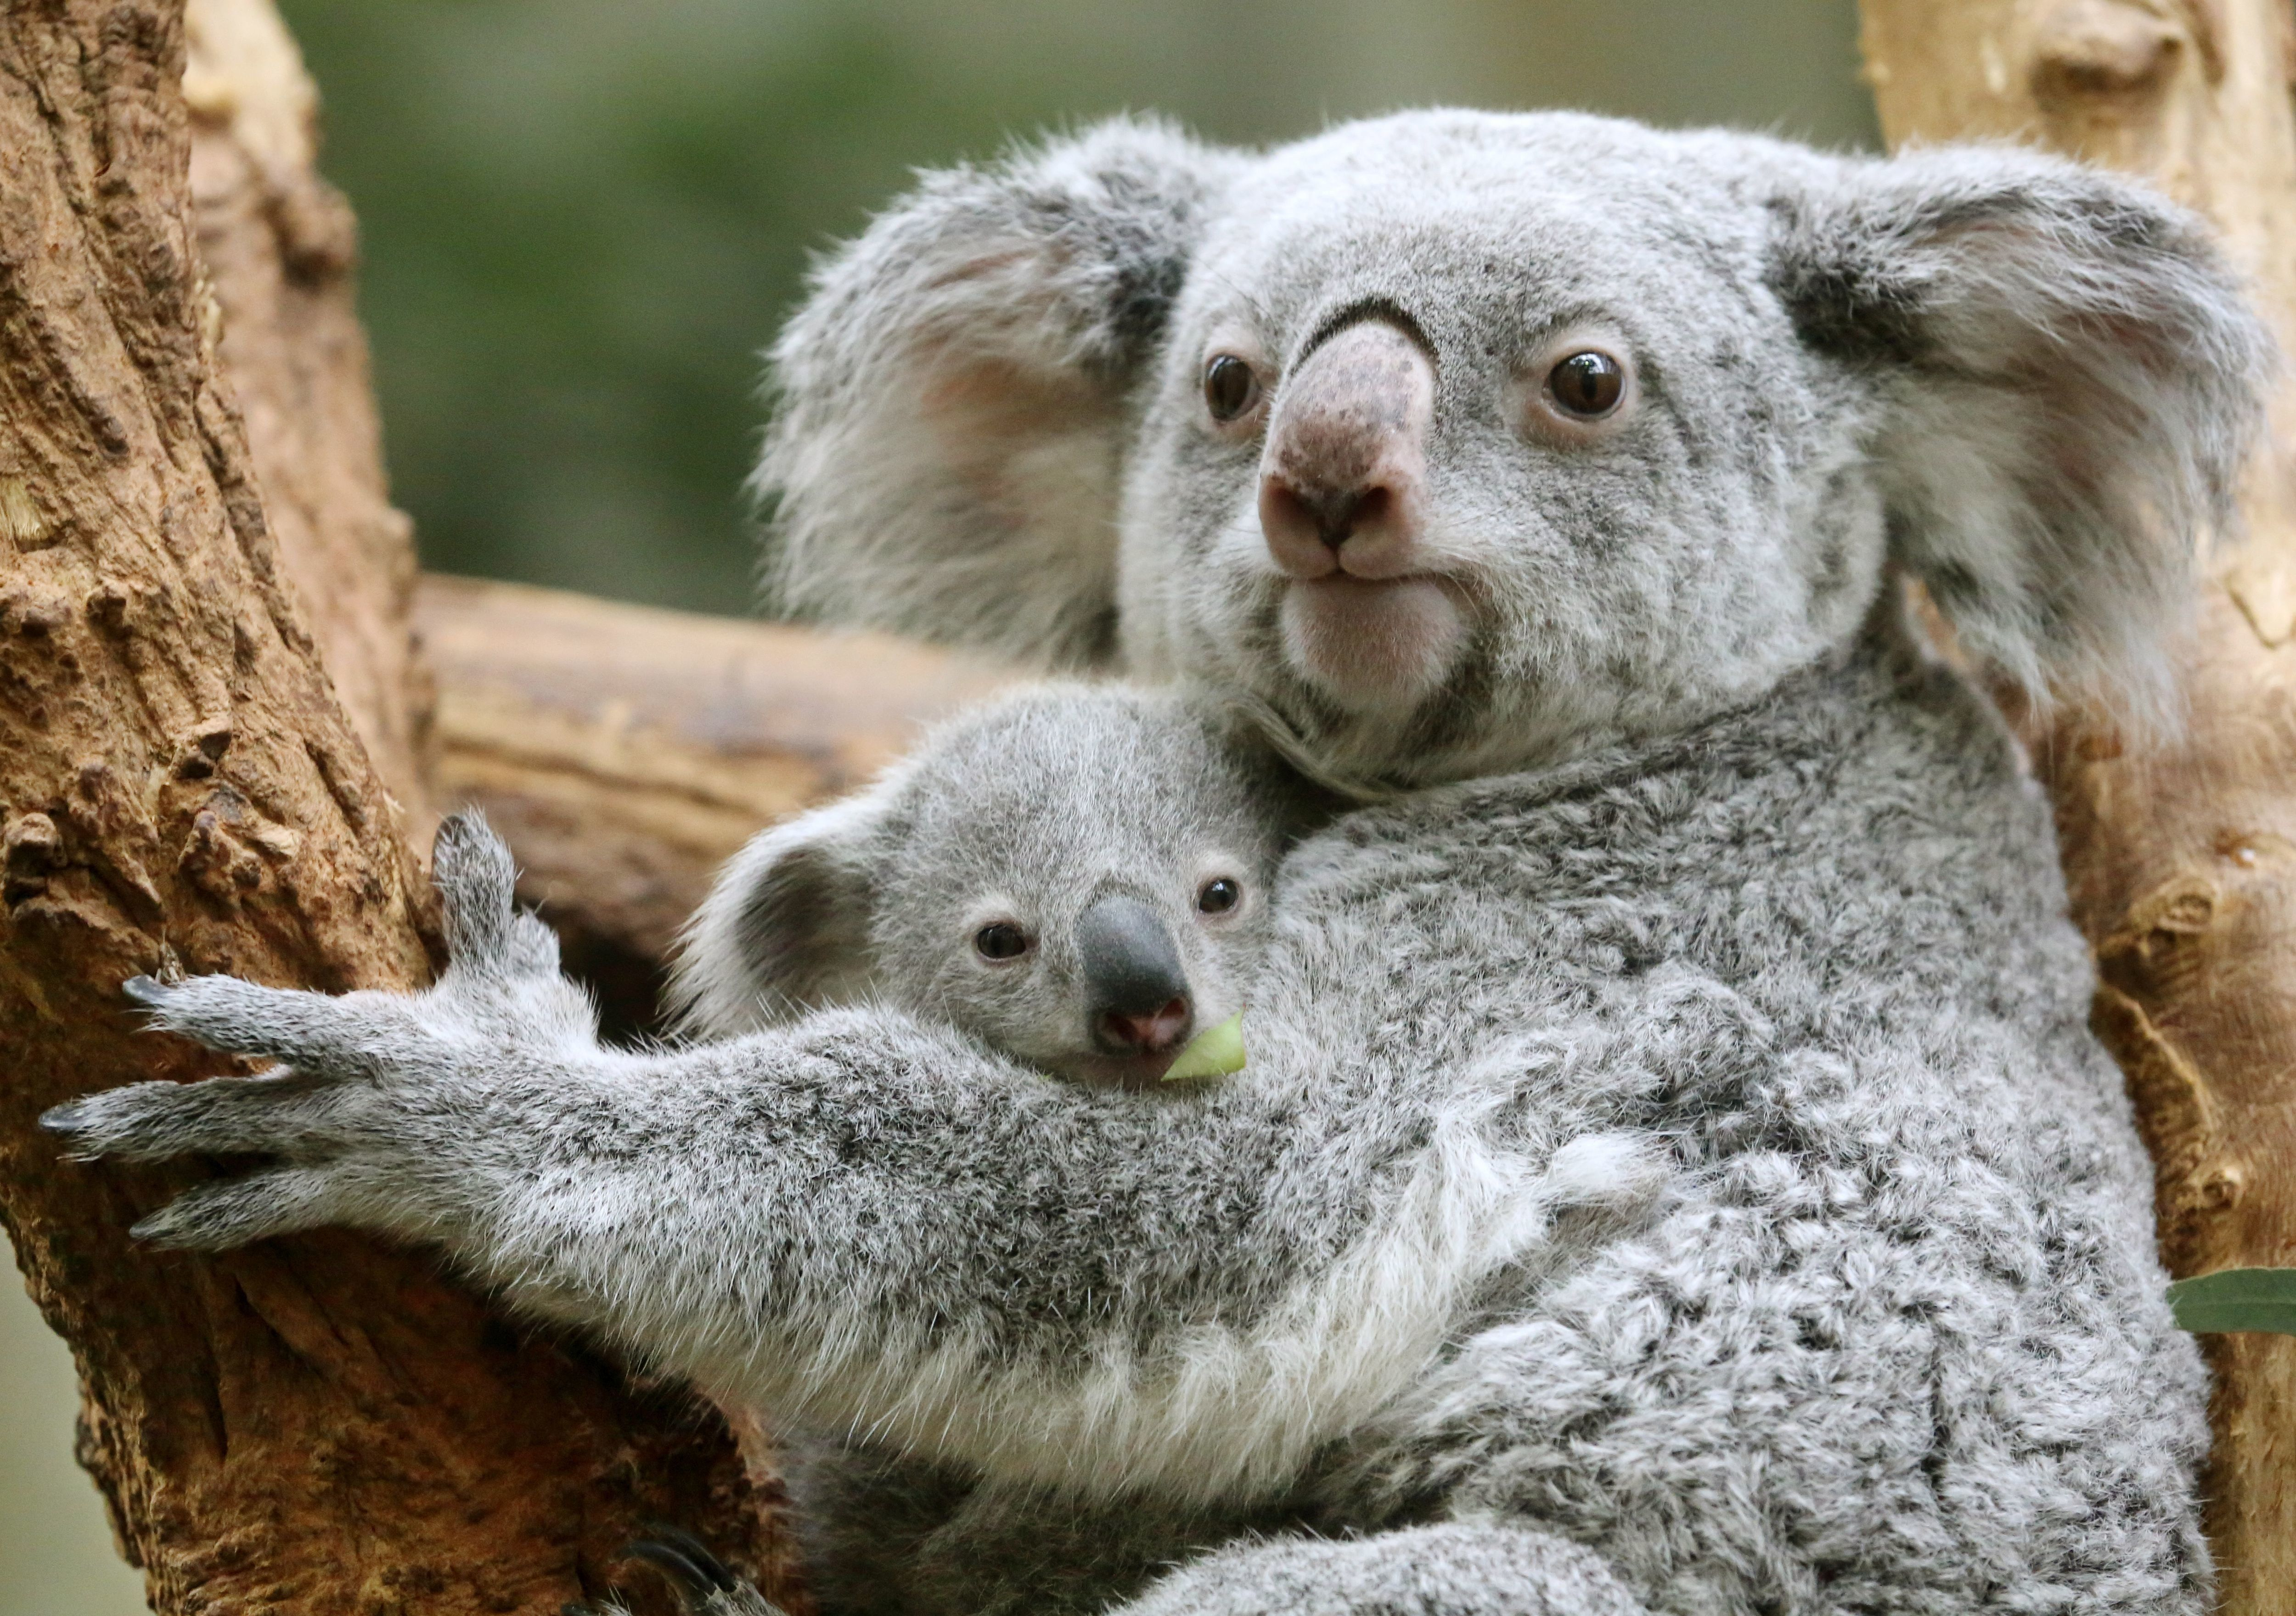 Battle To Save Koalas In Australia Has Serious Unintended Consequences